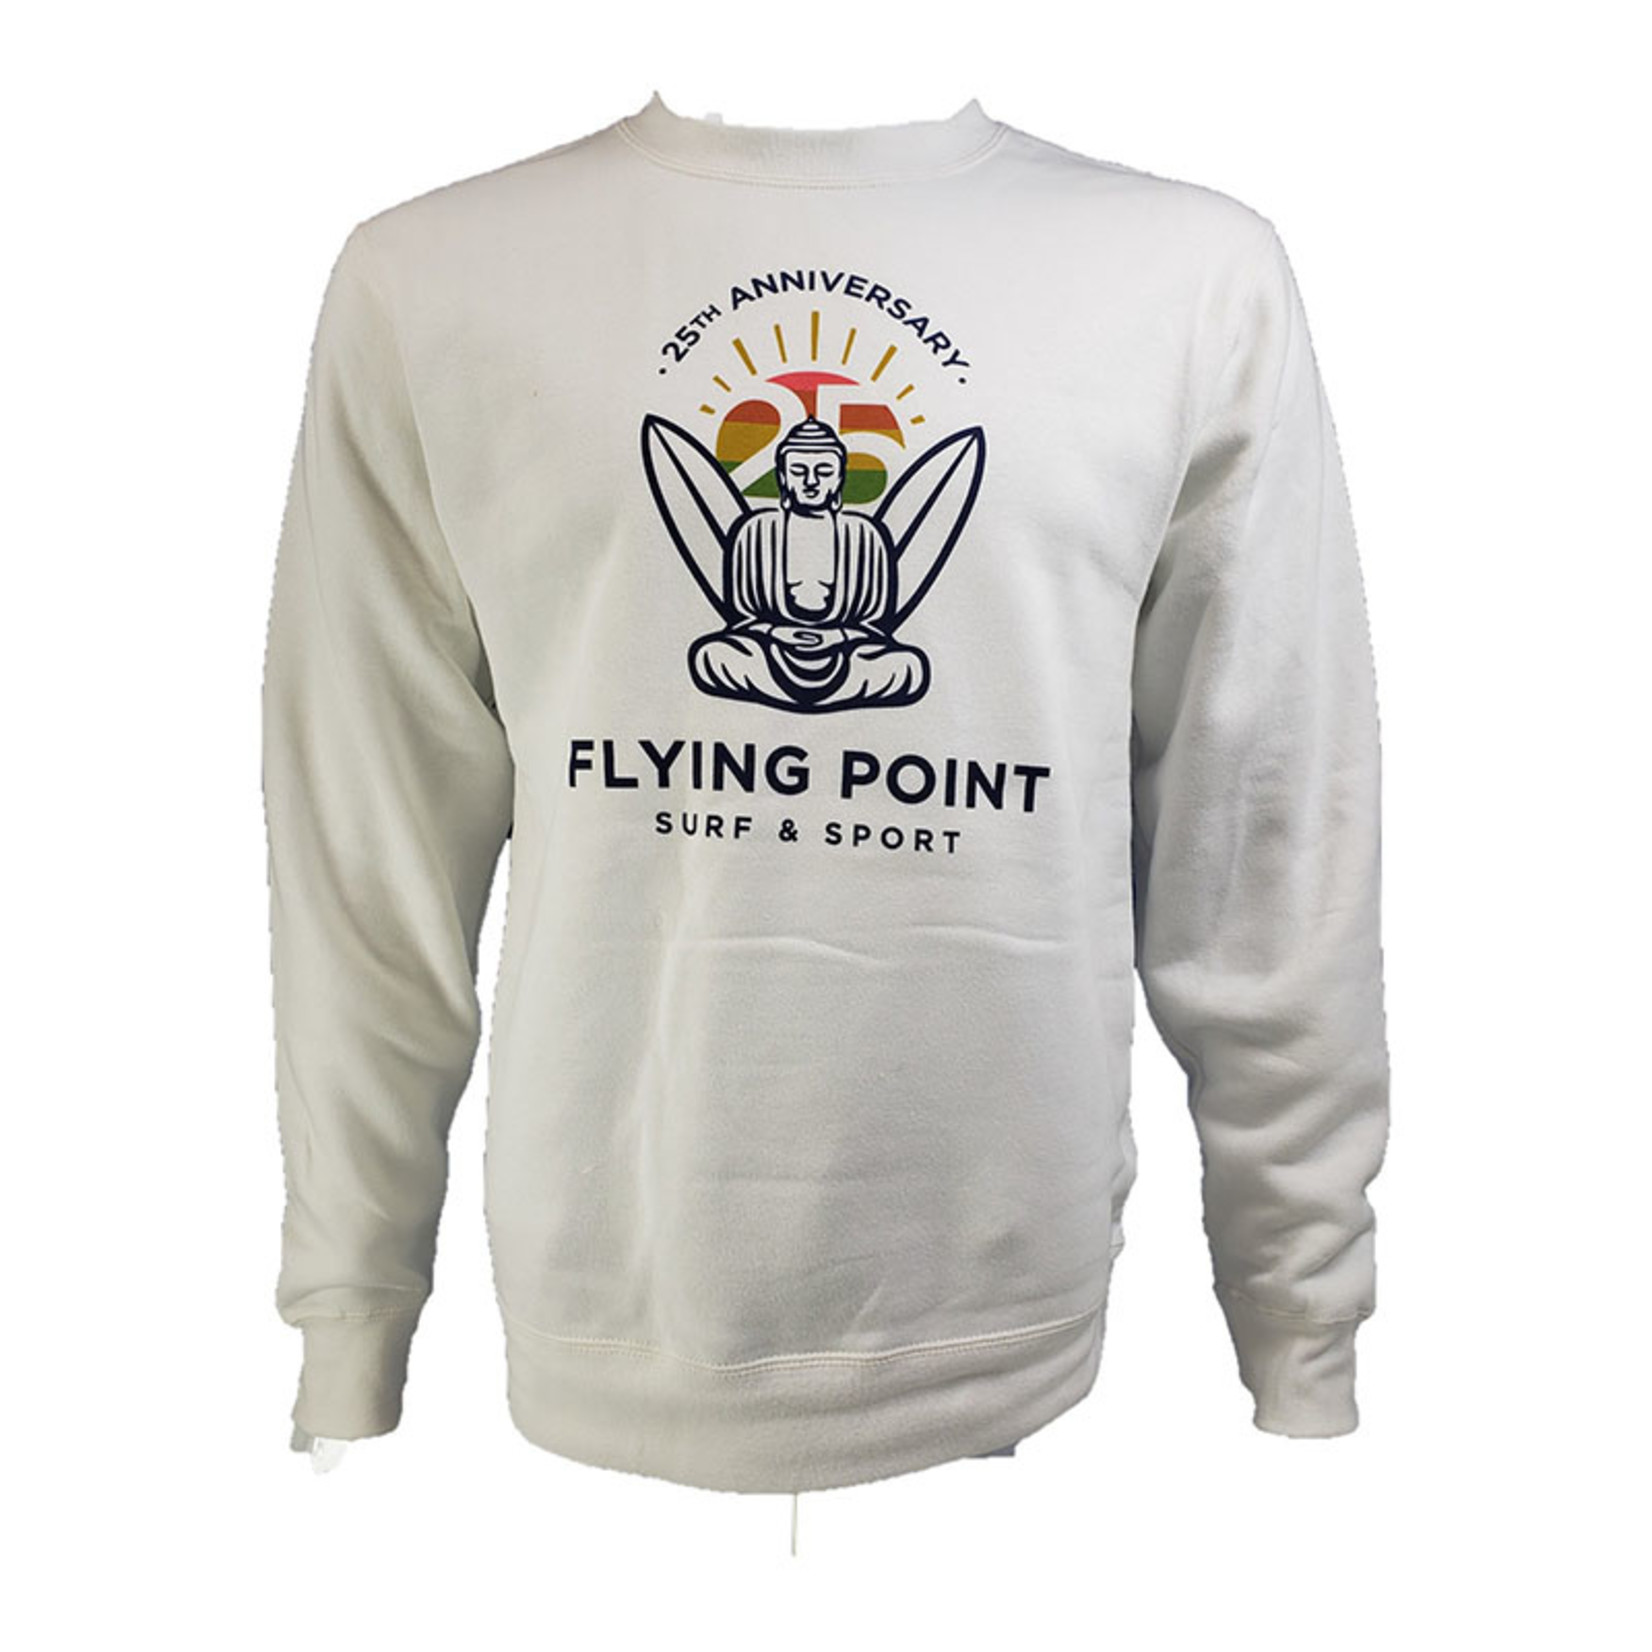 Flying Point 25th Anniversary Crew